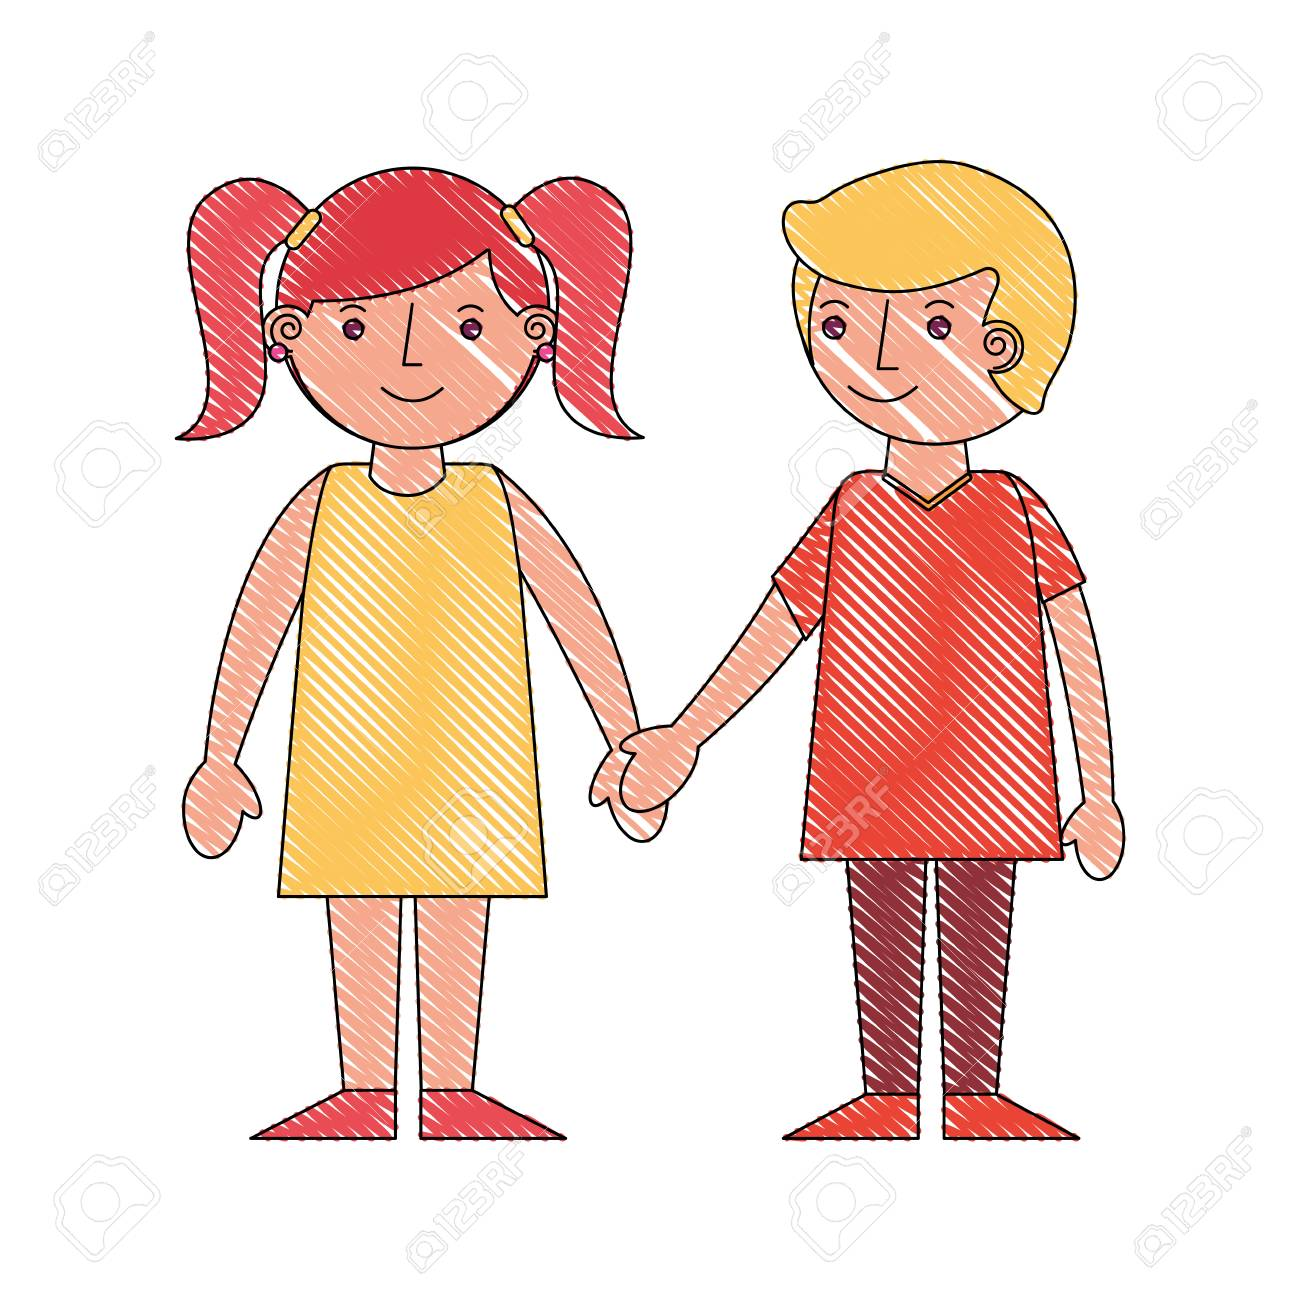 Cute boy and girl holding hands friends vector illustration drawing stock vector 114998298